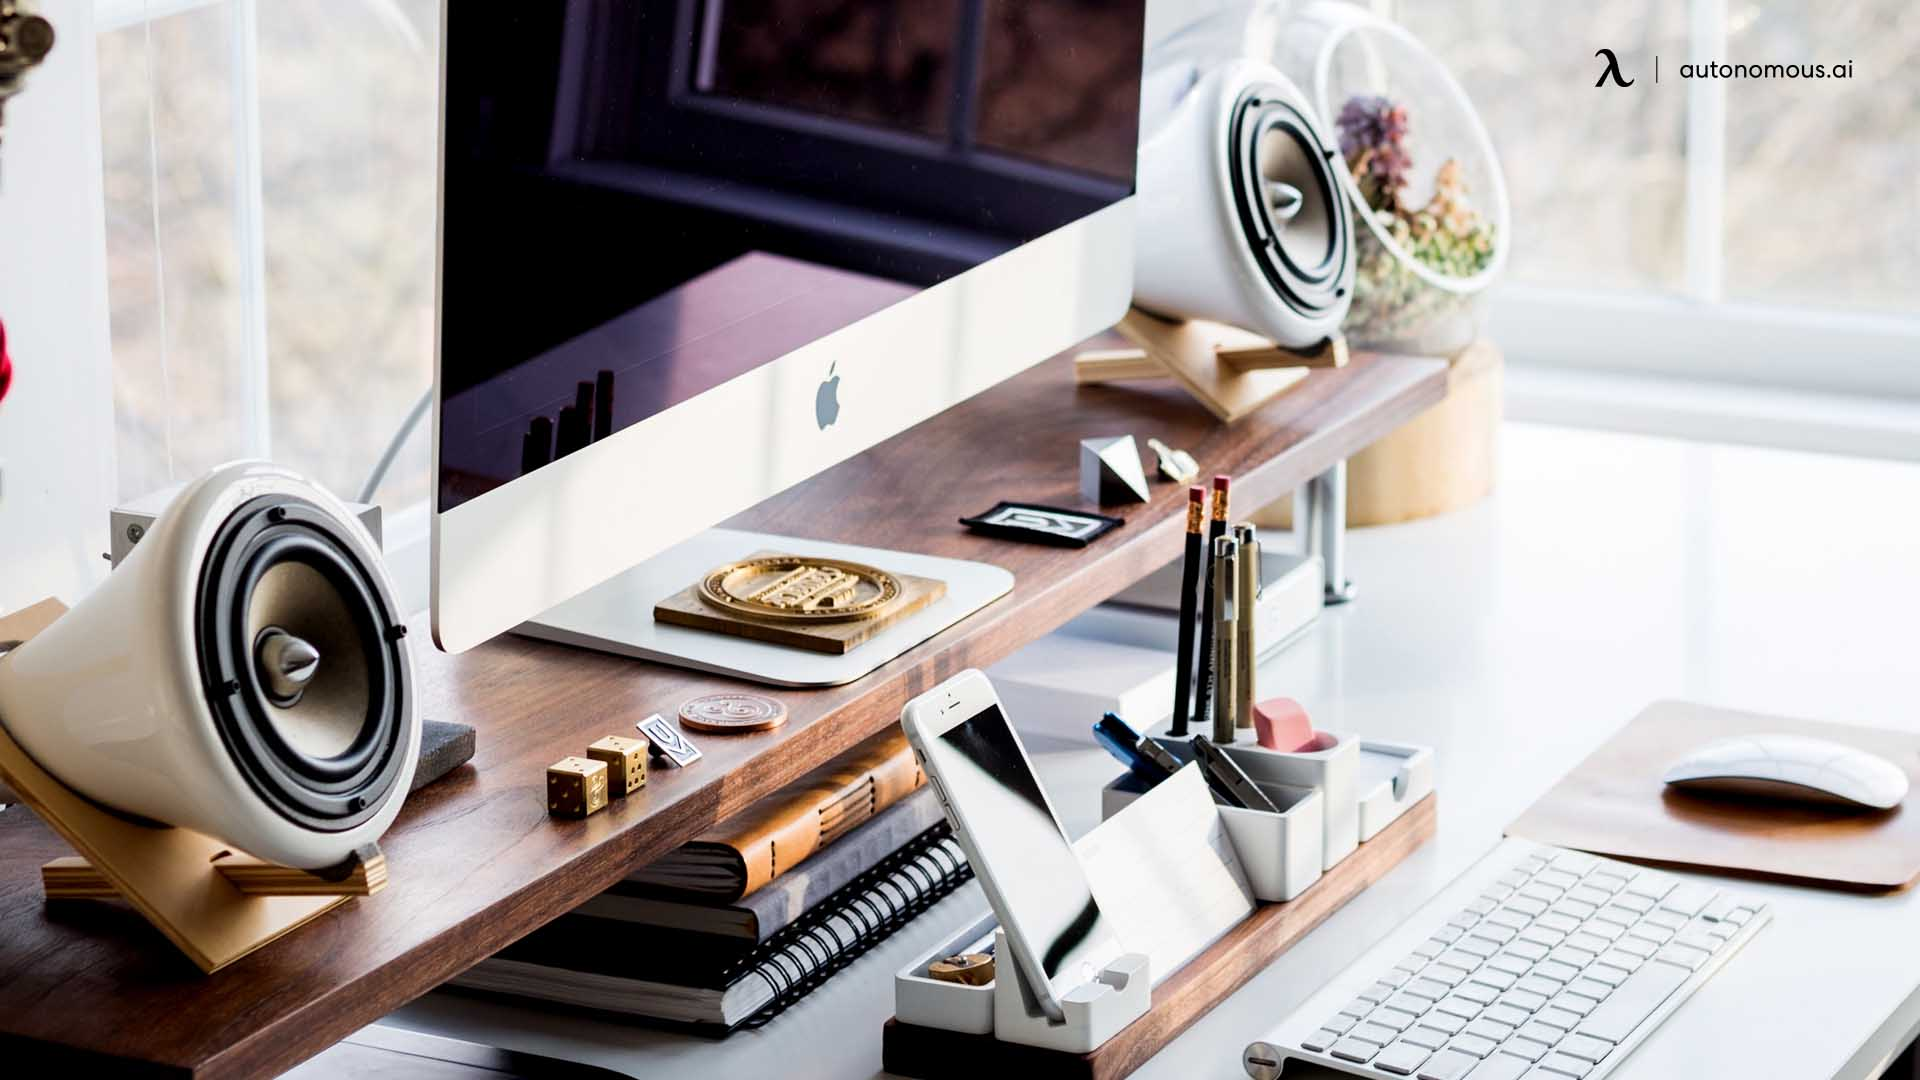 Unique workspace for more daily productivity